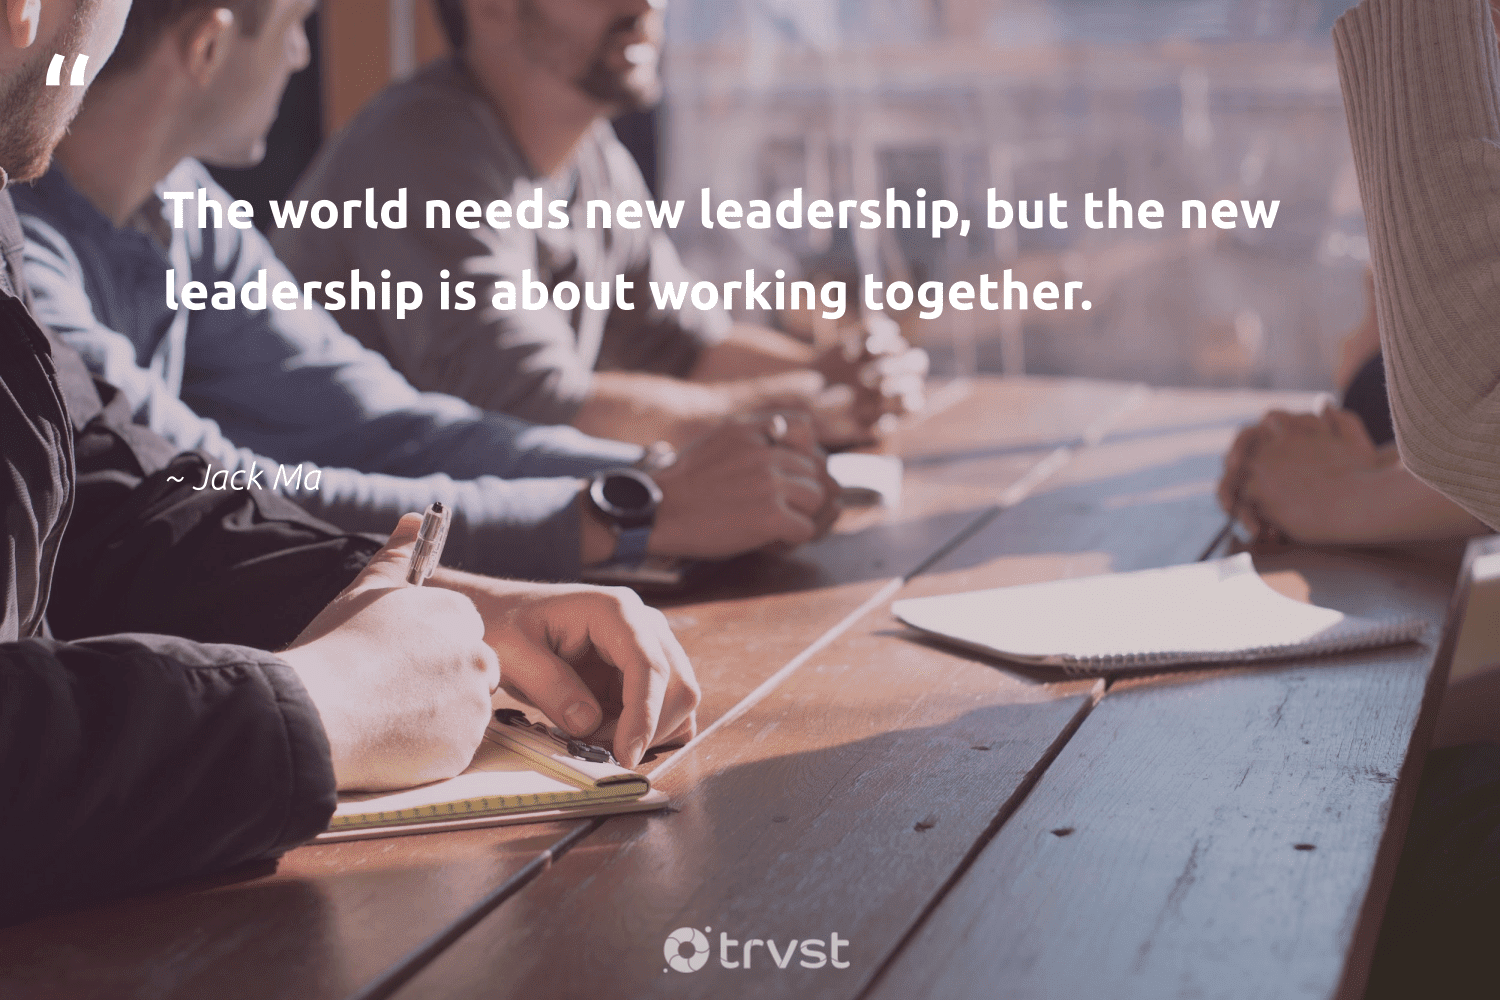 """""""The world needs new leadership, but the new leadership is about working together.""""  - Jack Ma #trvst #quotes #leadership #workingtogether #leadershipdevelopment #futureofwork #begreat #takeaction #leadershipskills #nevergiveup #softskills #socialchange"""